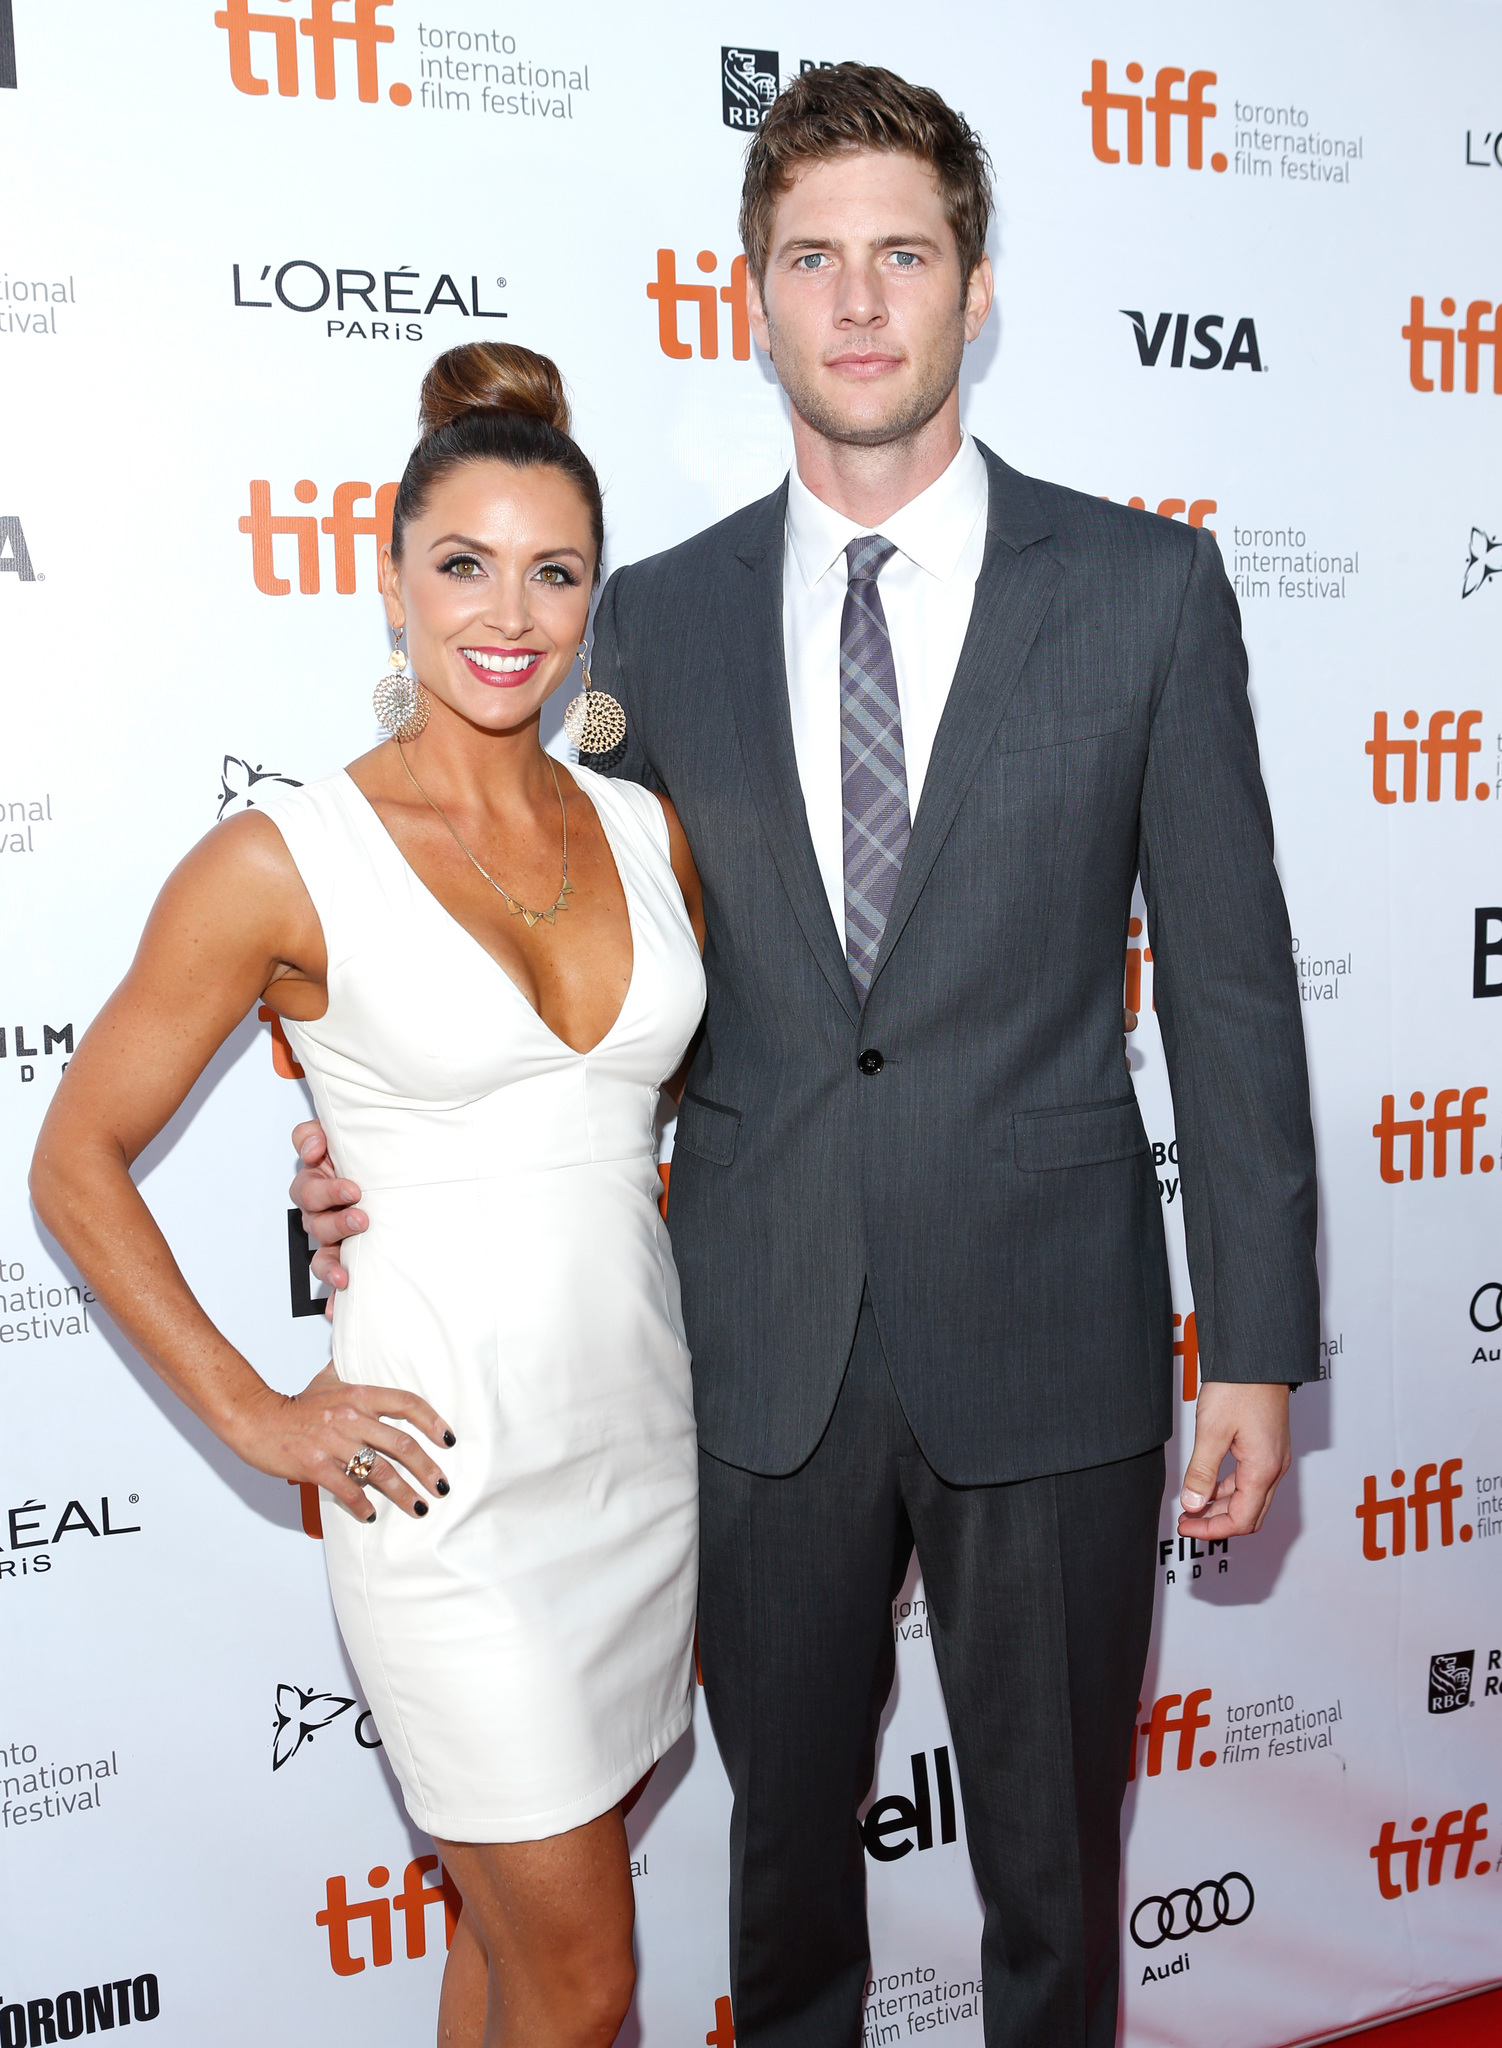 Ryan McPartlin and Danielle Kirlin at an event for The Right Kind of Wrong (2013)